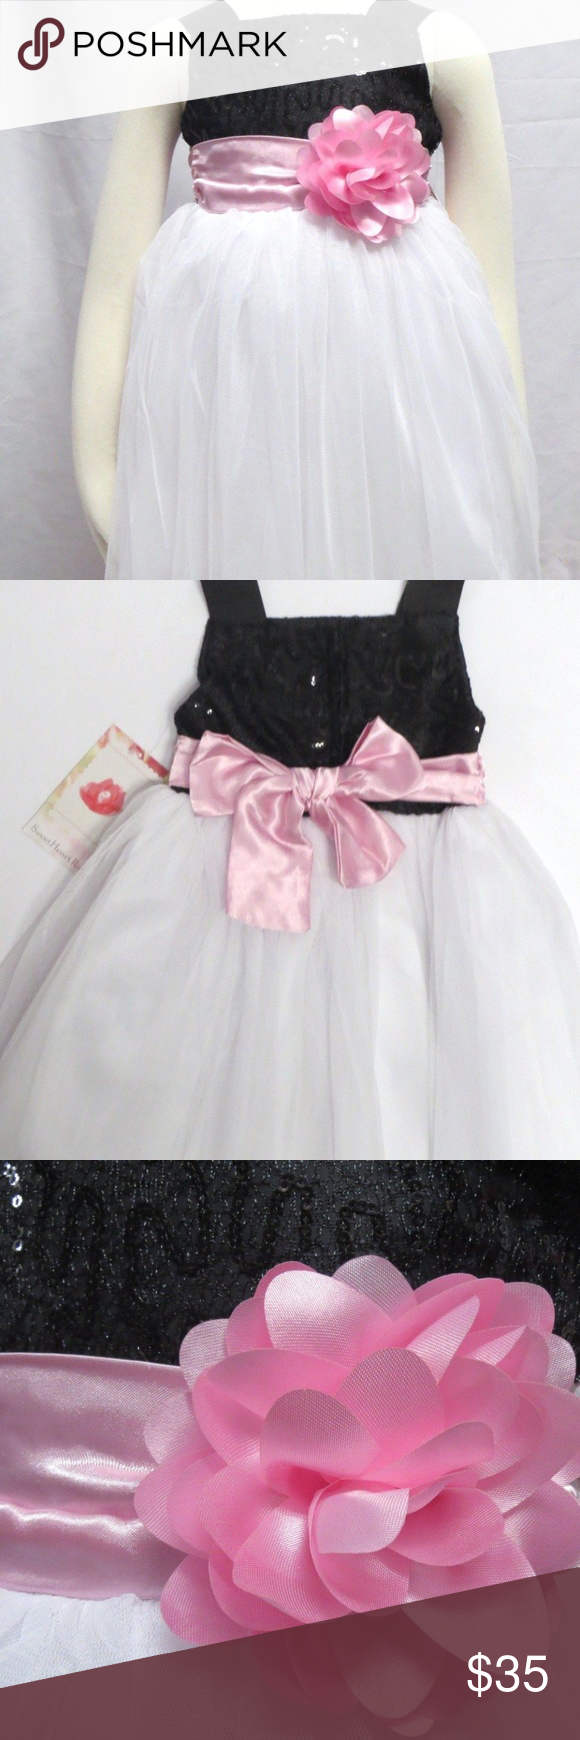 b739c96c7 Toddler Sequin Tulle Ballerina Special Occasion 2T SWEET HEART ROSE ...